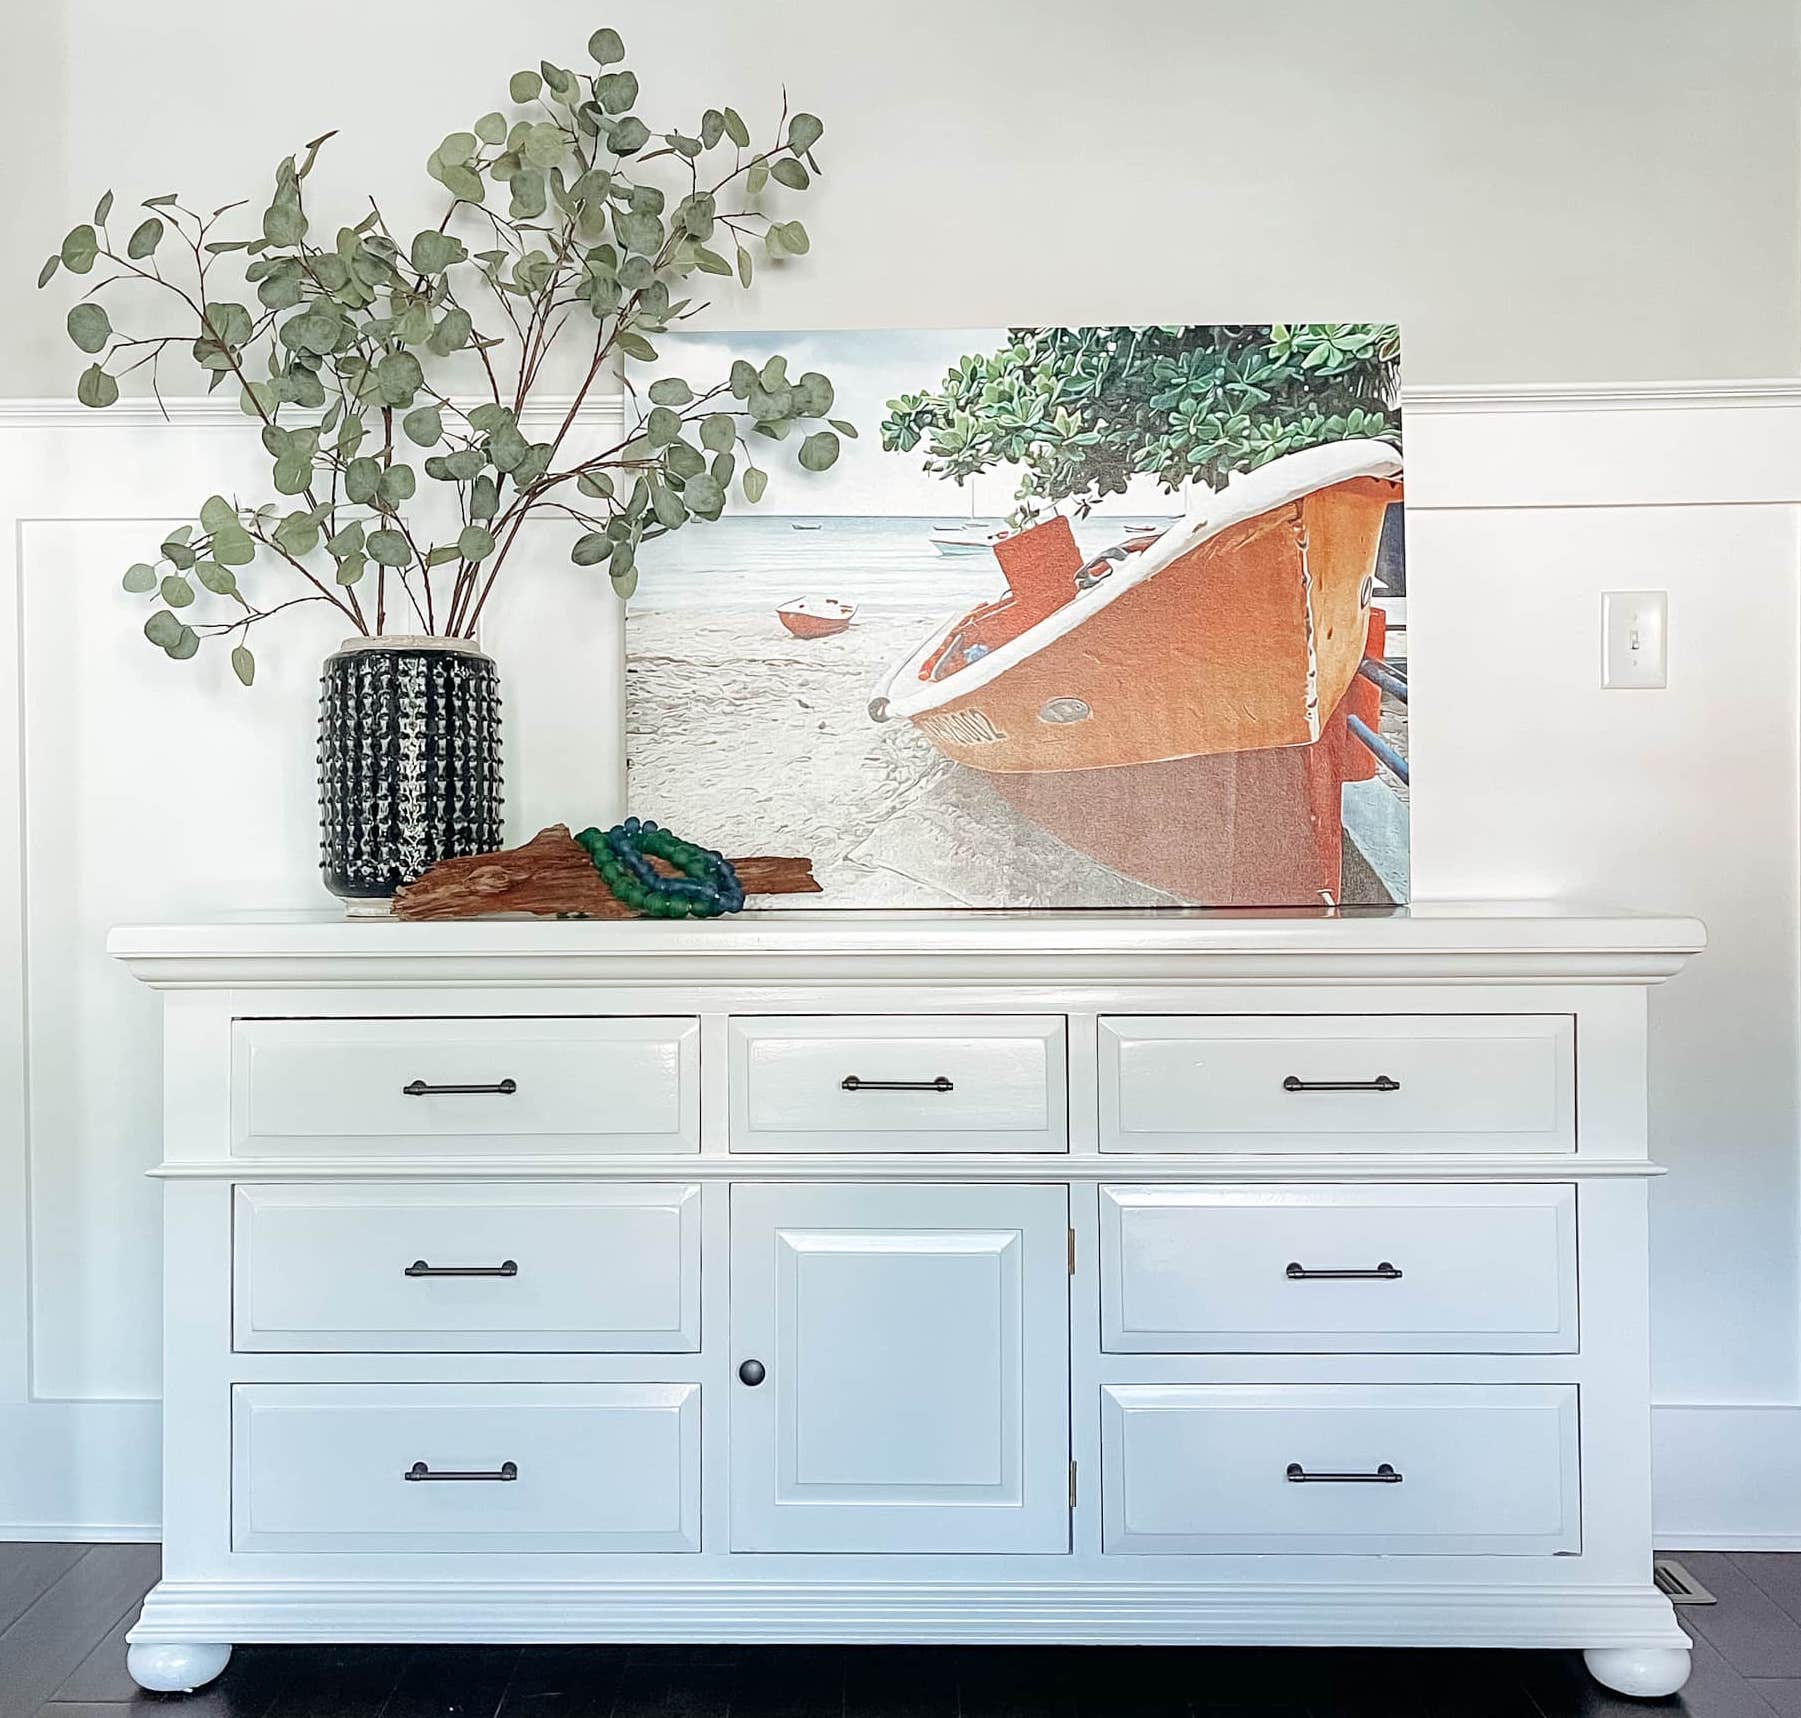 white broyhill dresser refinished in semi gloss paint